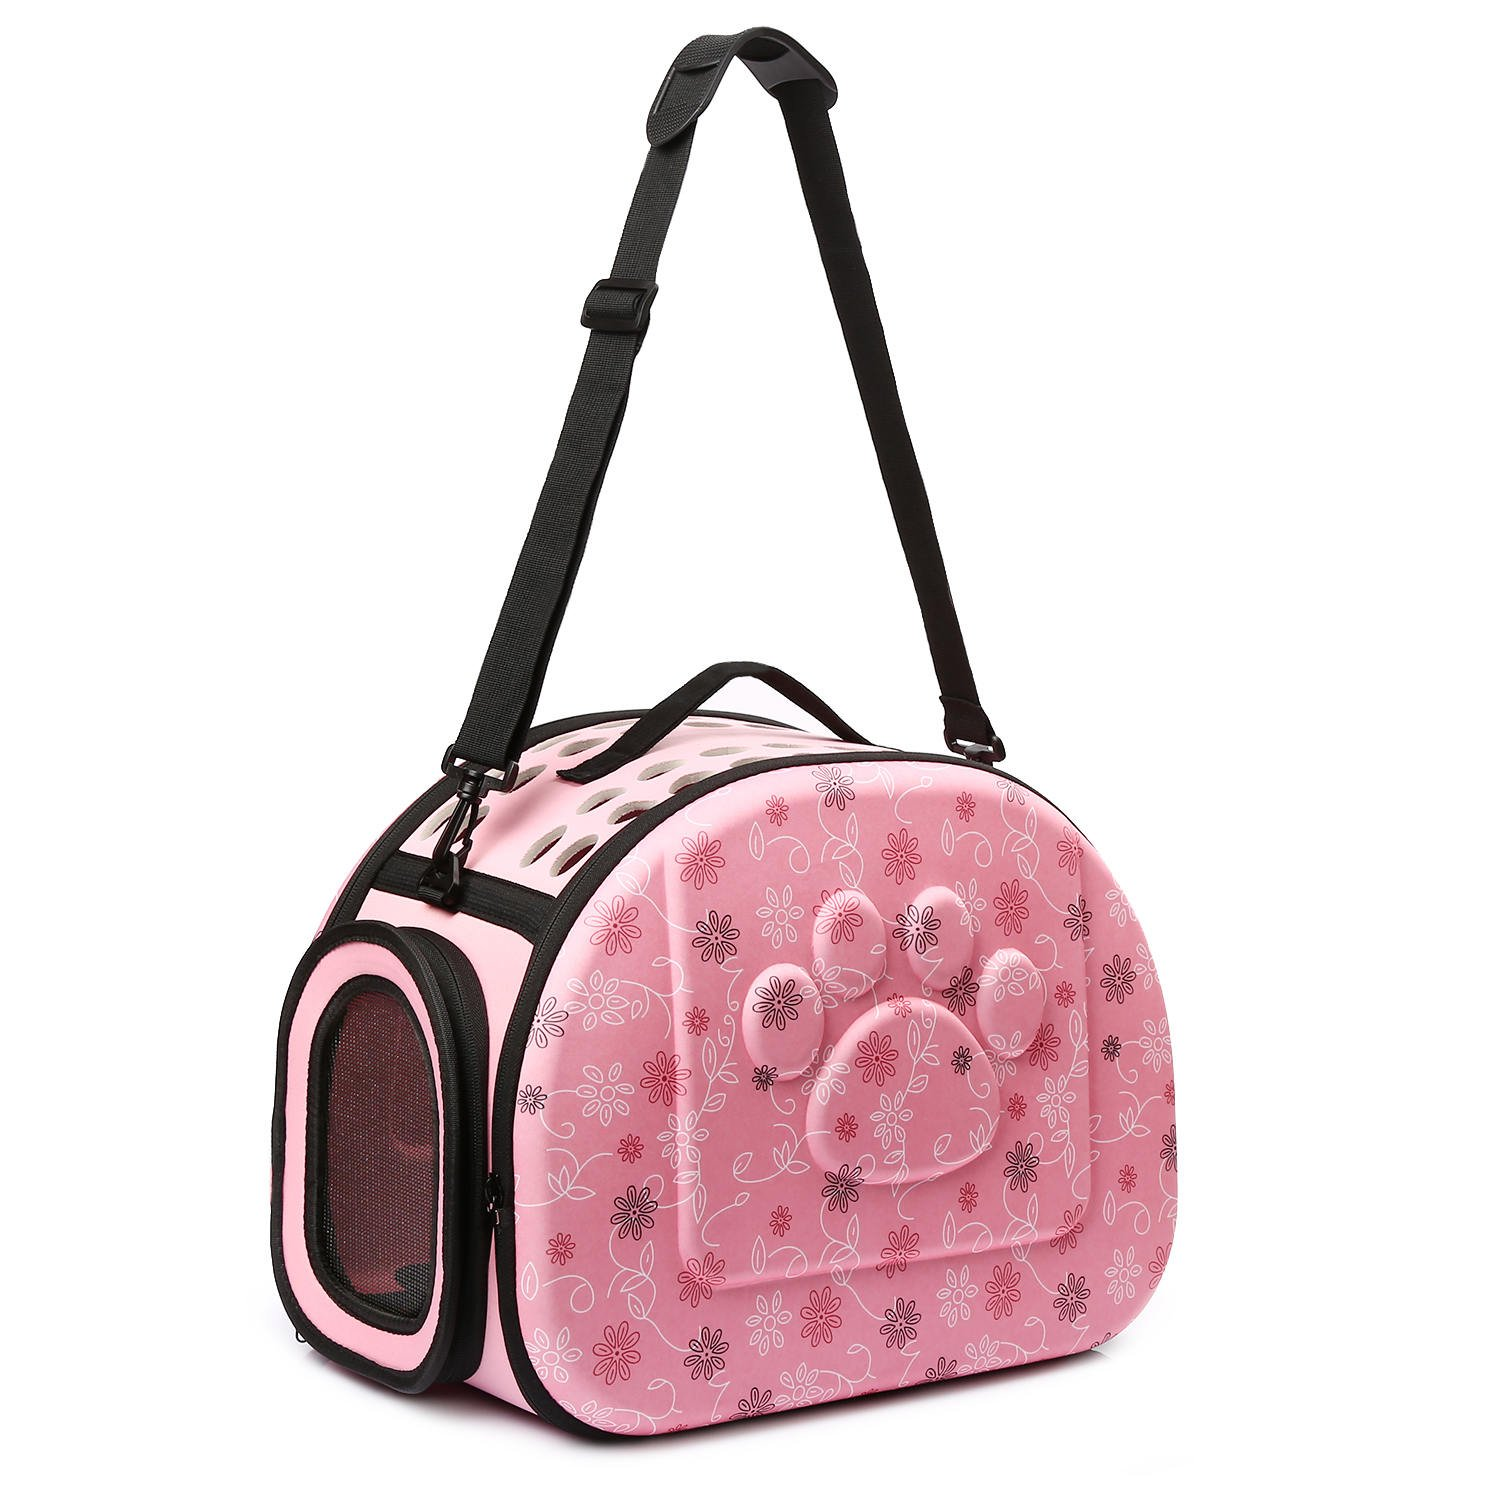 CORALTEA EVA Cute Portable Collapsible for Pets of Medium Size Cats & Dogs Airline Approved Outdoor Under Seat Travel Pet Carrier Soft Sided Puppy Bag (pink)